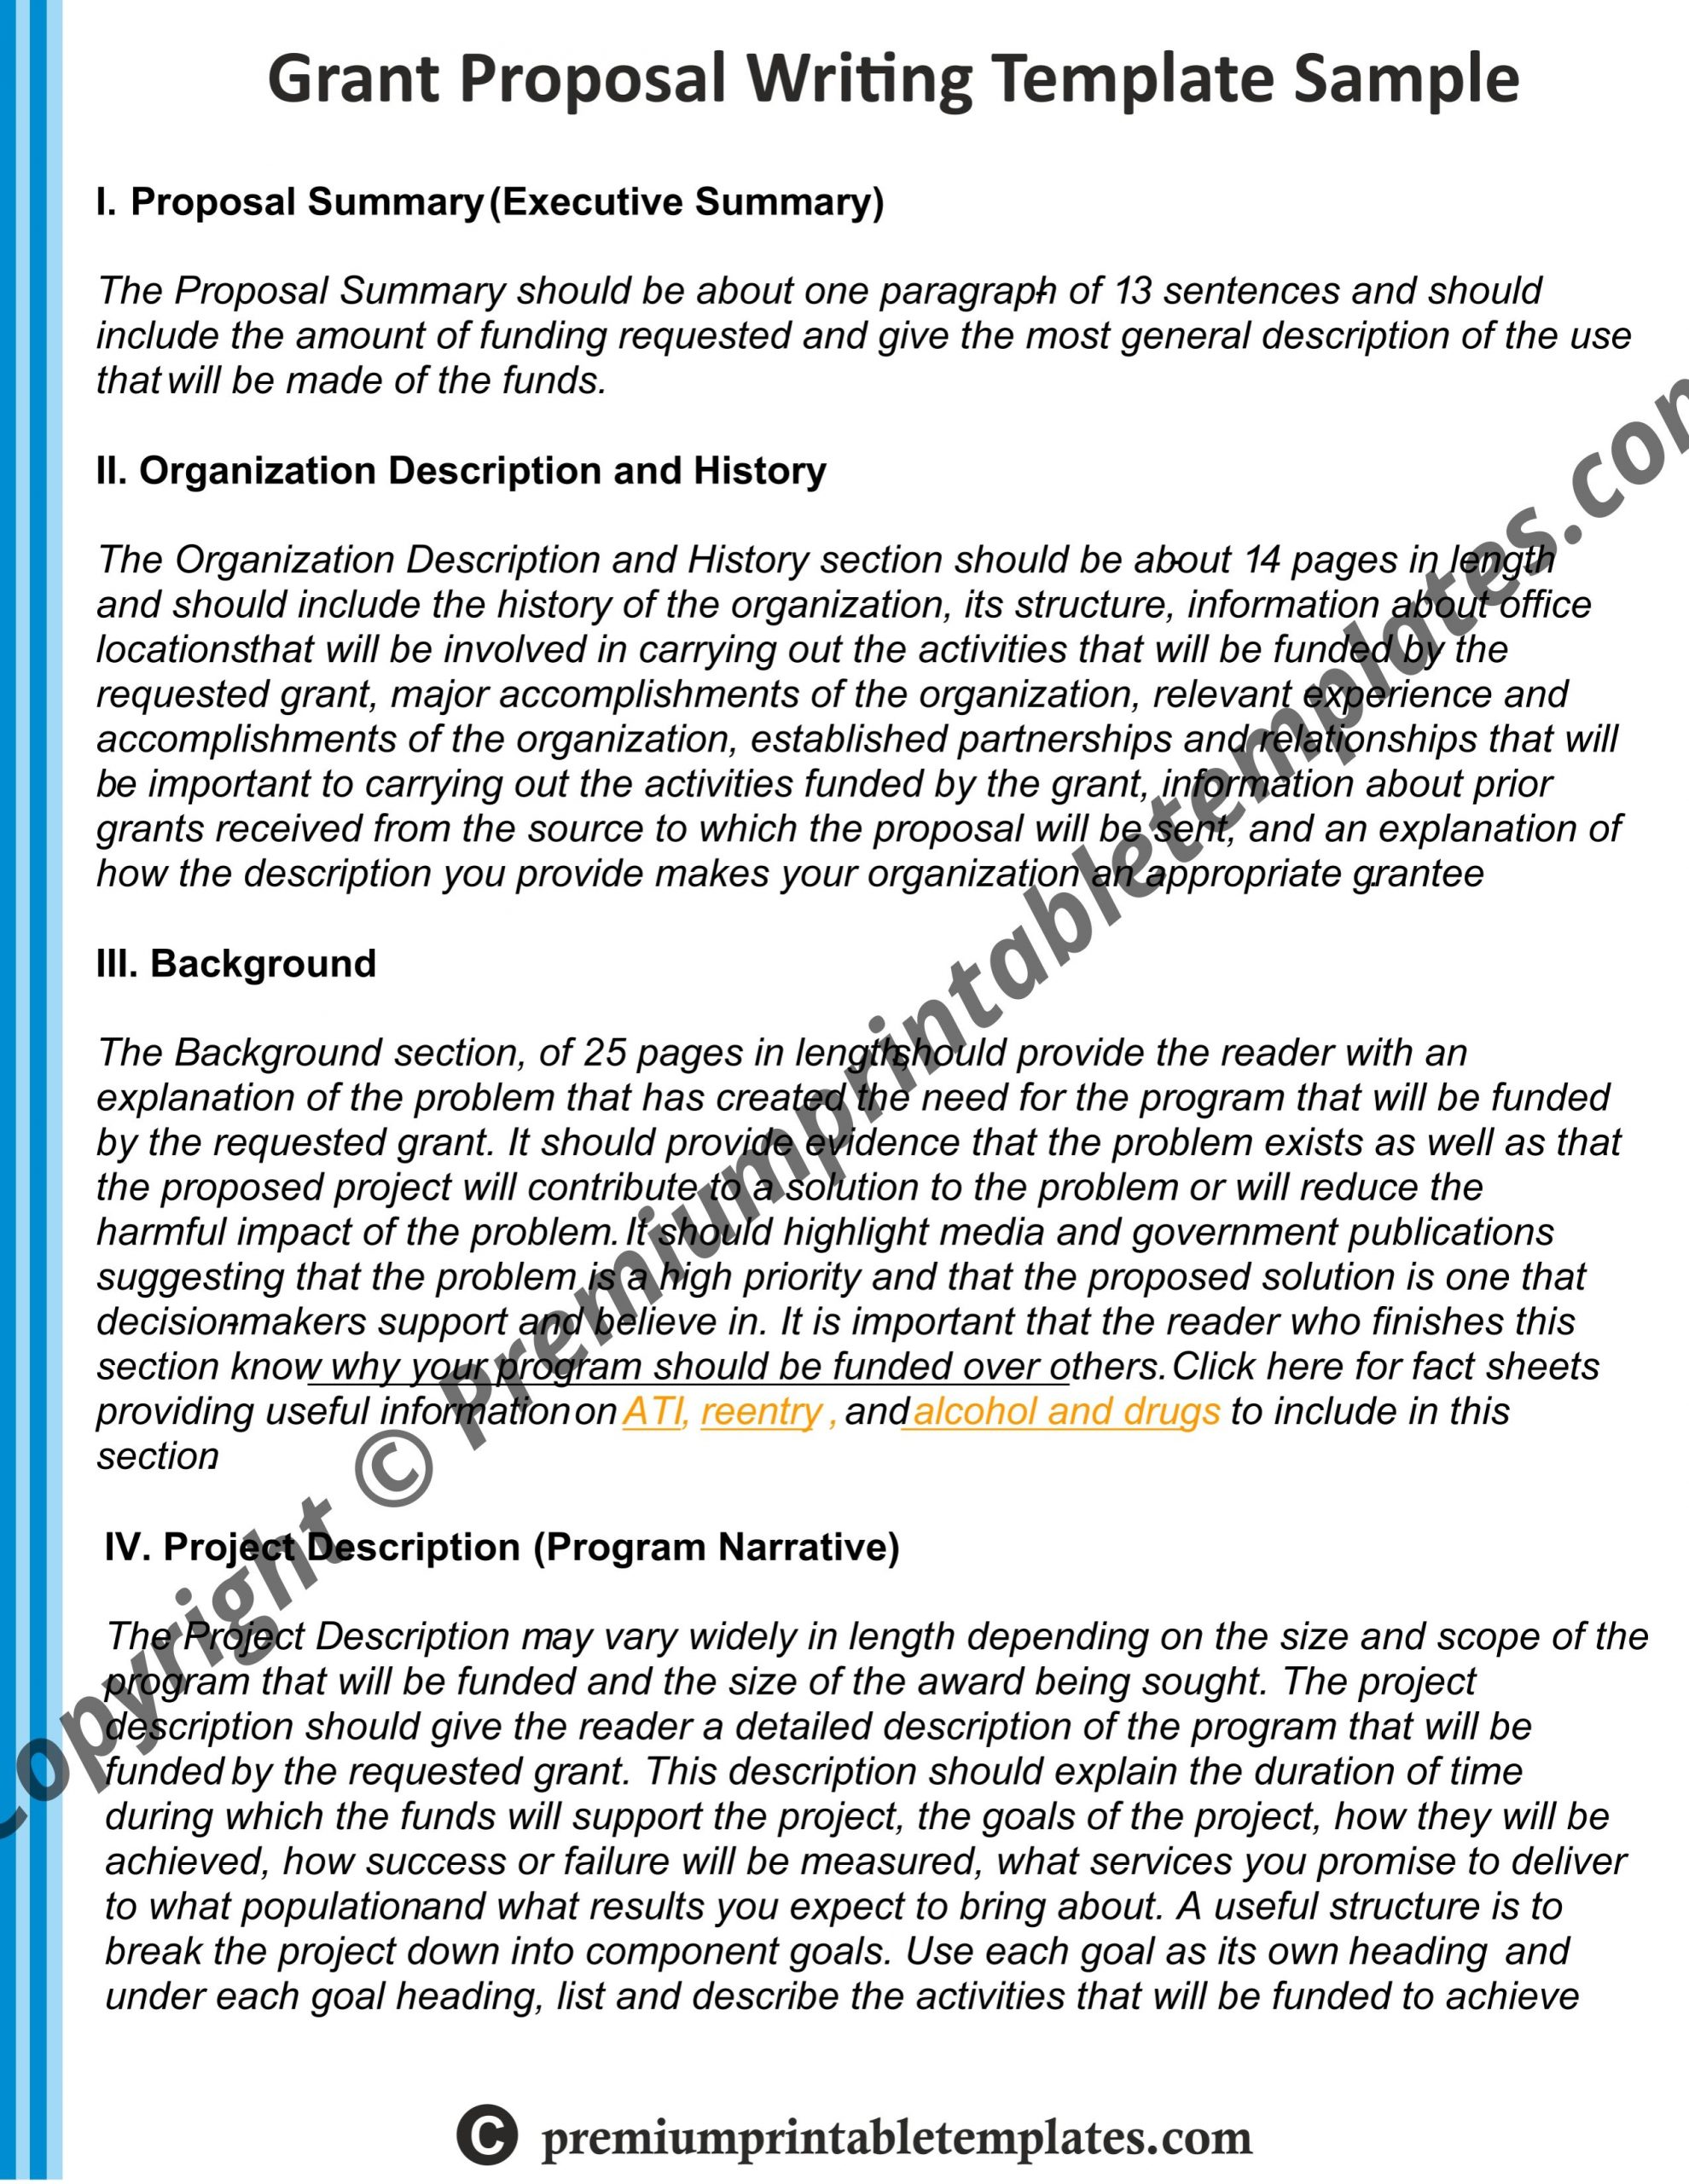 How to write an admission essay proposal